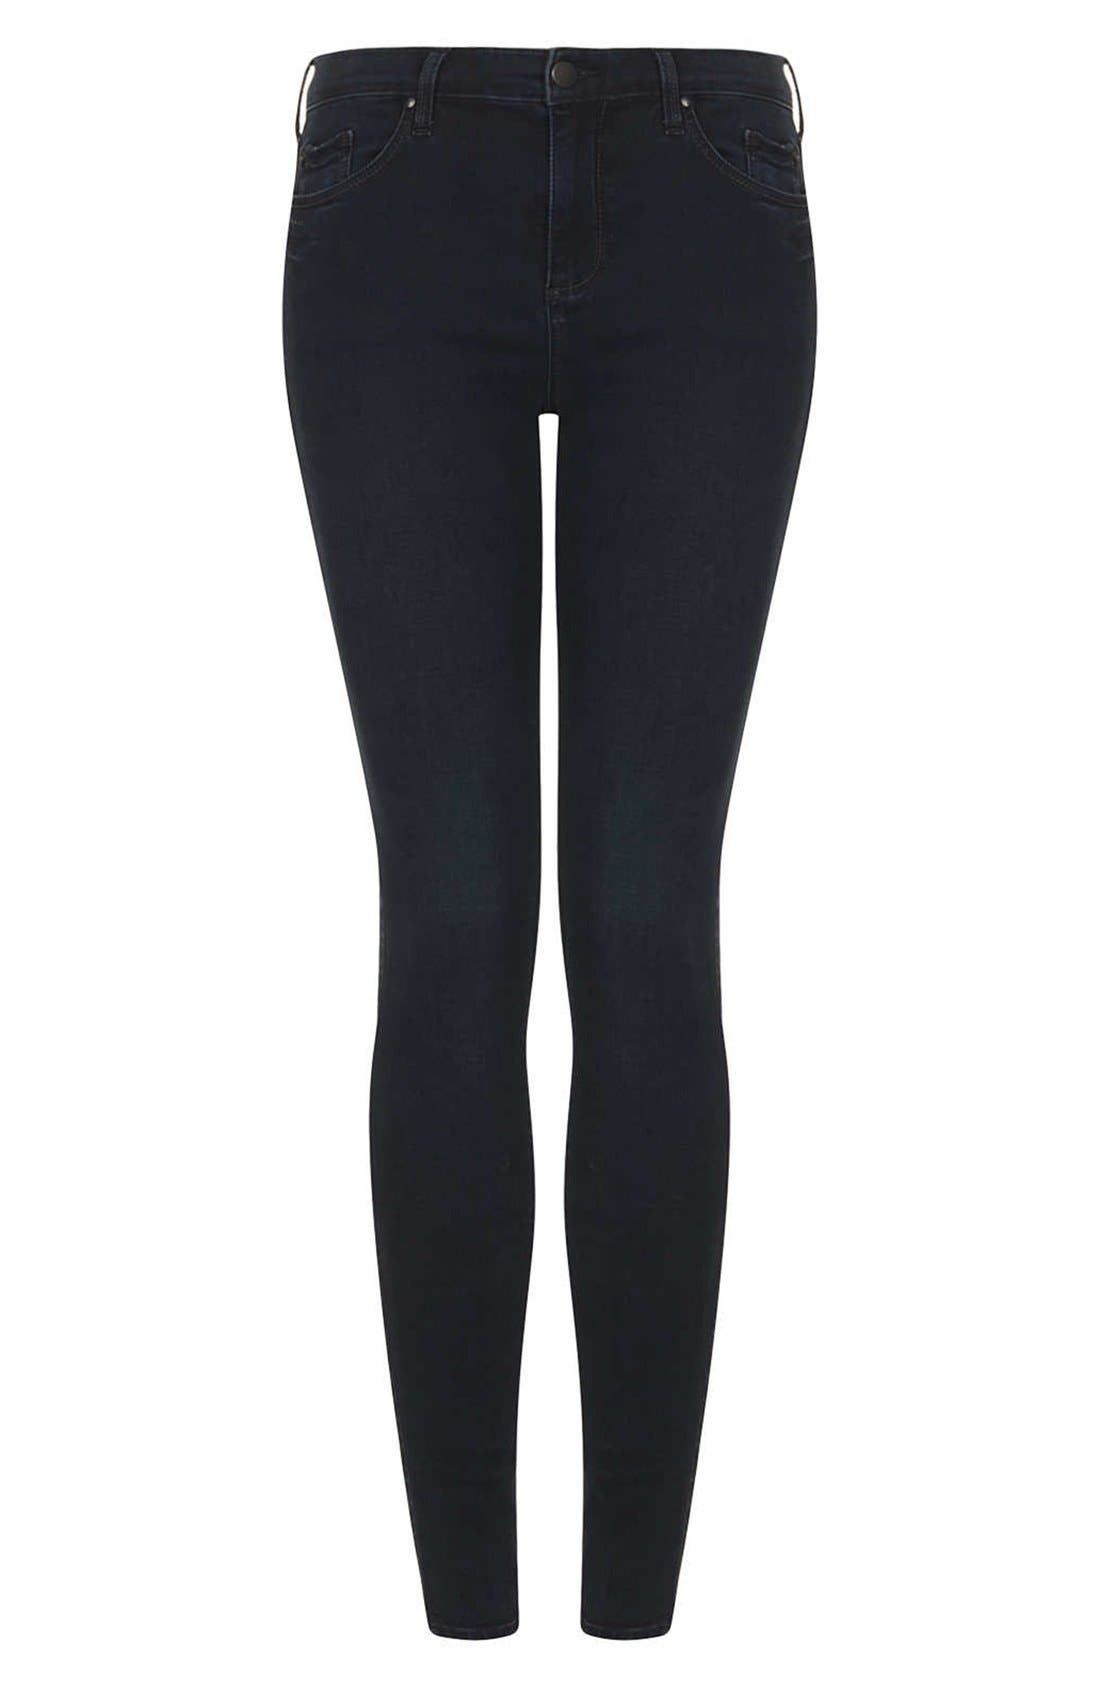 Alternate Image 3  - Topshop Moto 'Leigh' Skinny Jeans (Indigo) (Regular & Short)